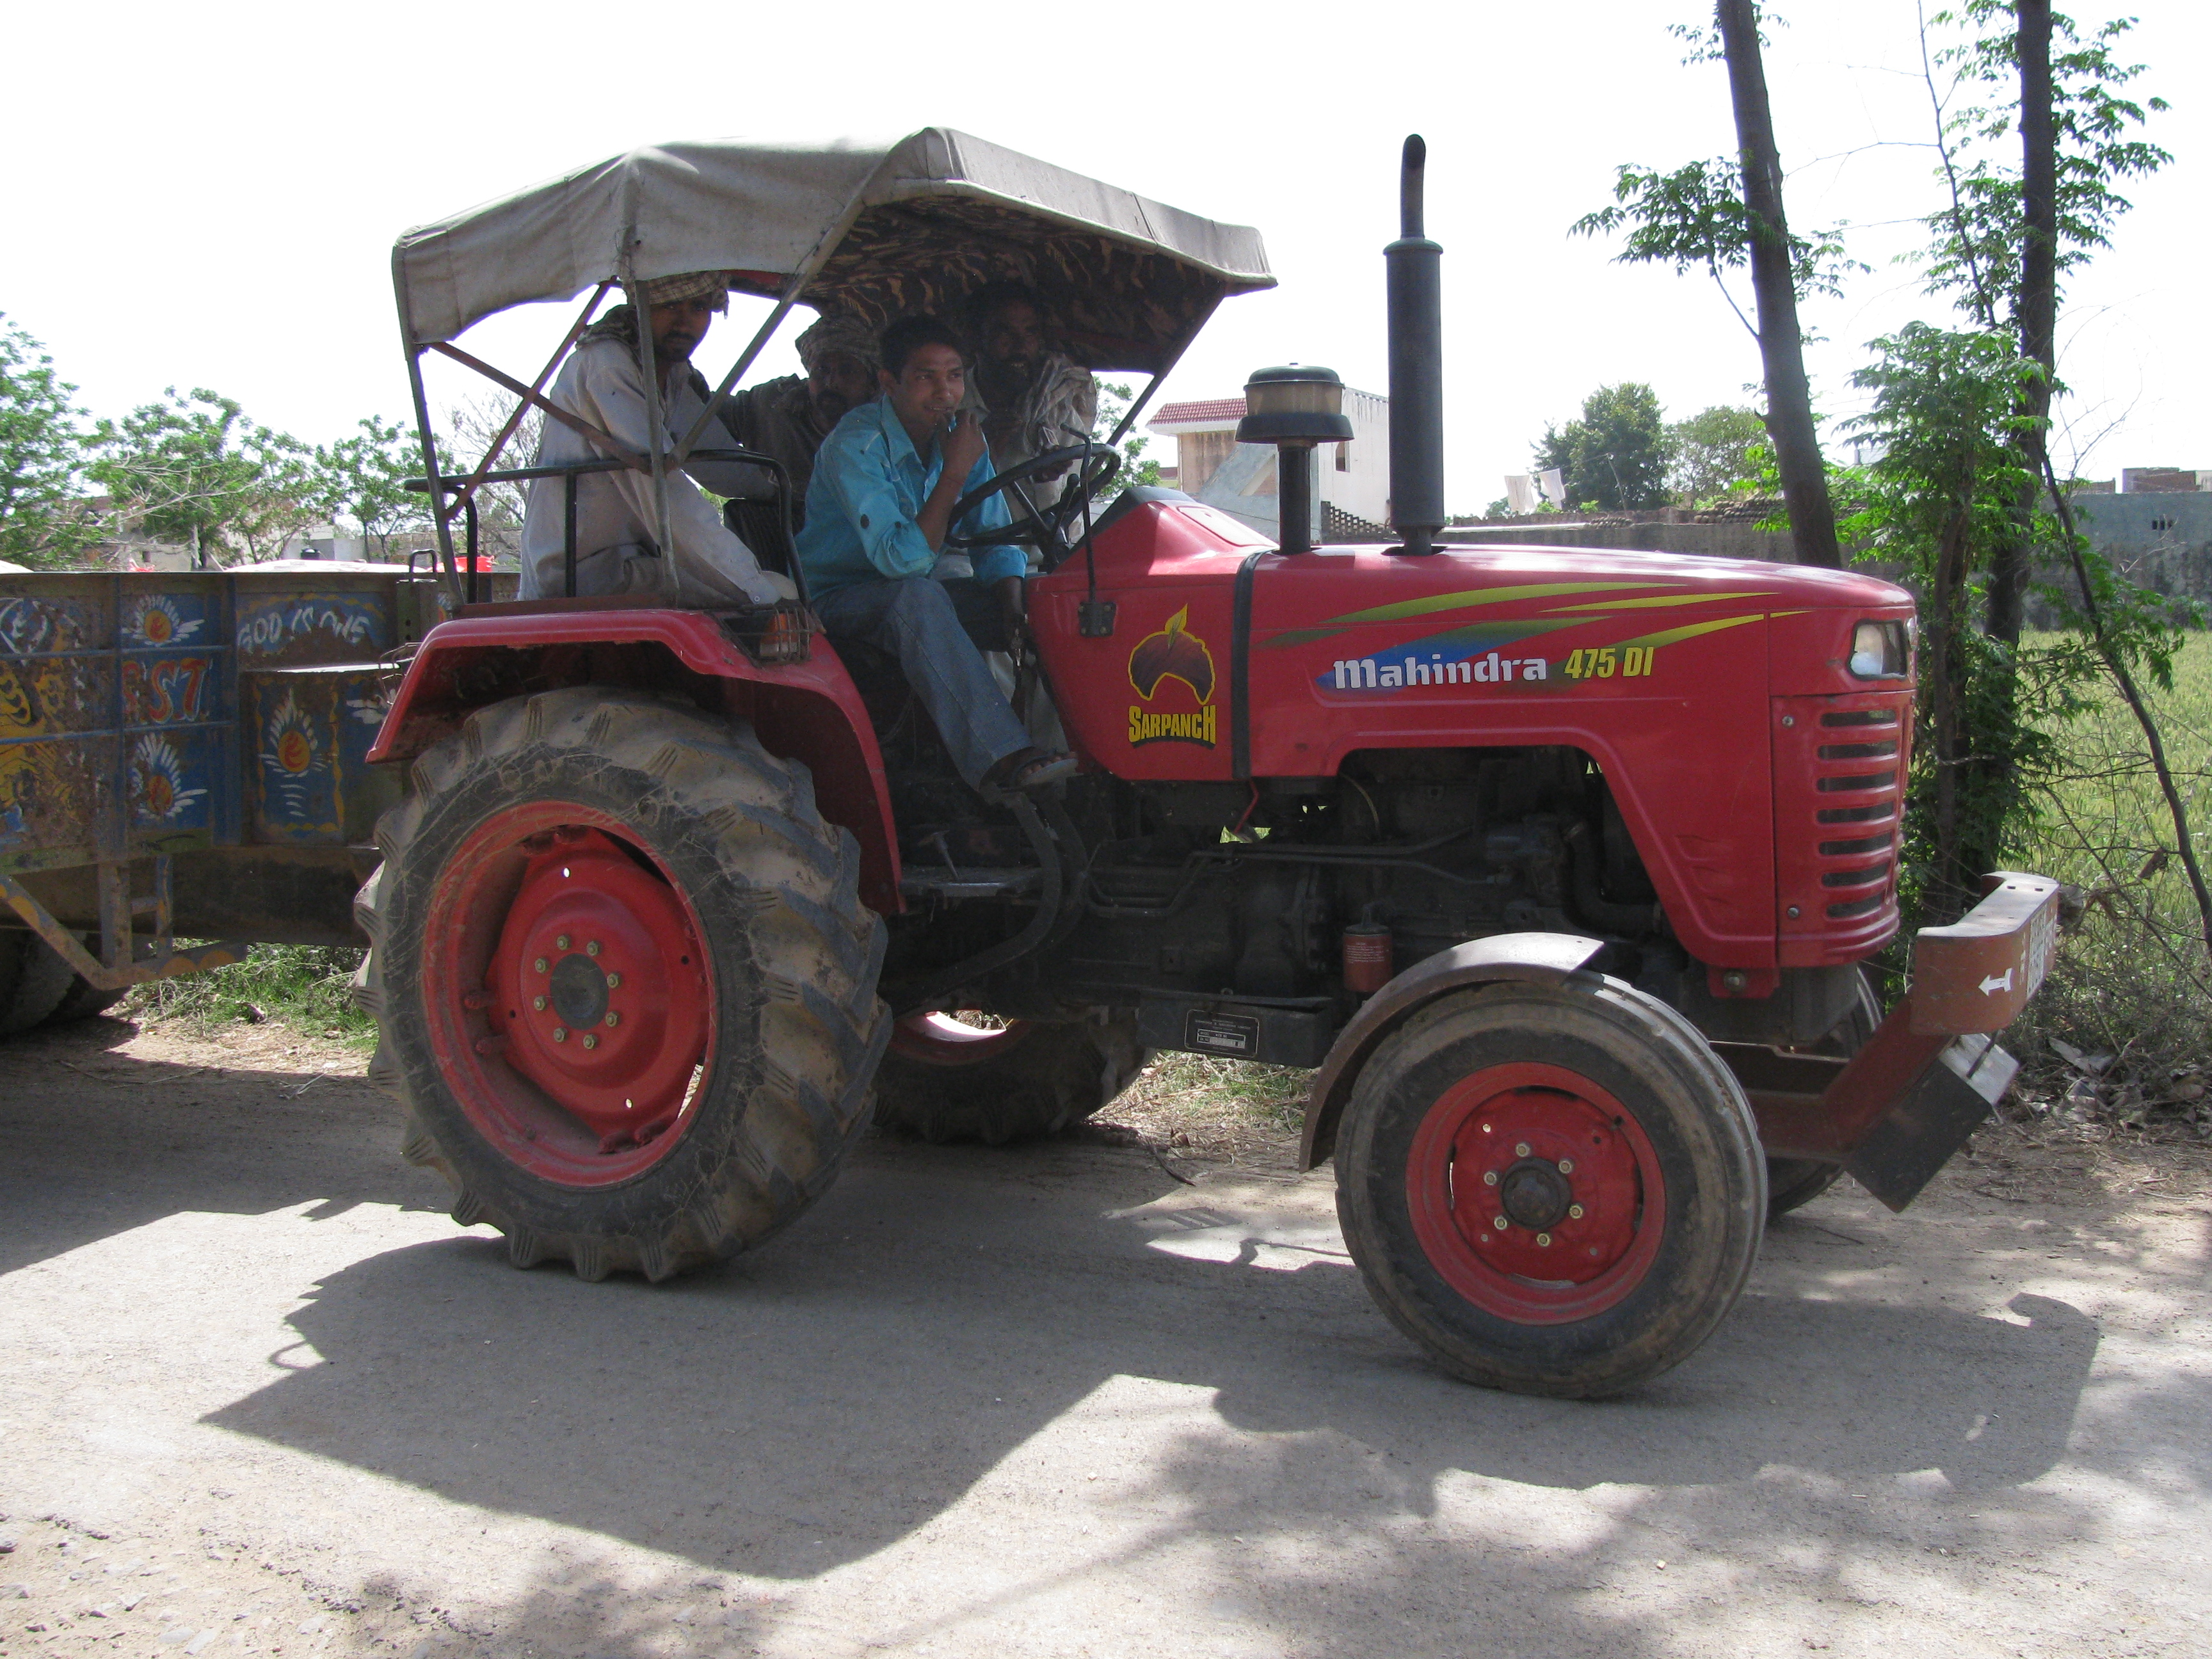 mahindra mahindra information Mahindra mahindra find the complete information on mahindra mahindra get news, articles, pictures, videos, photos and more of mahindra mahindra on postjagrancom.